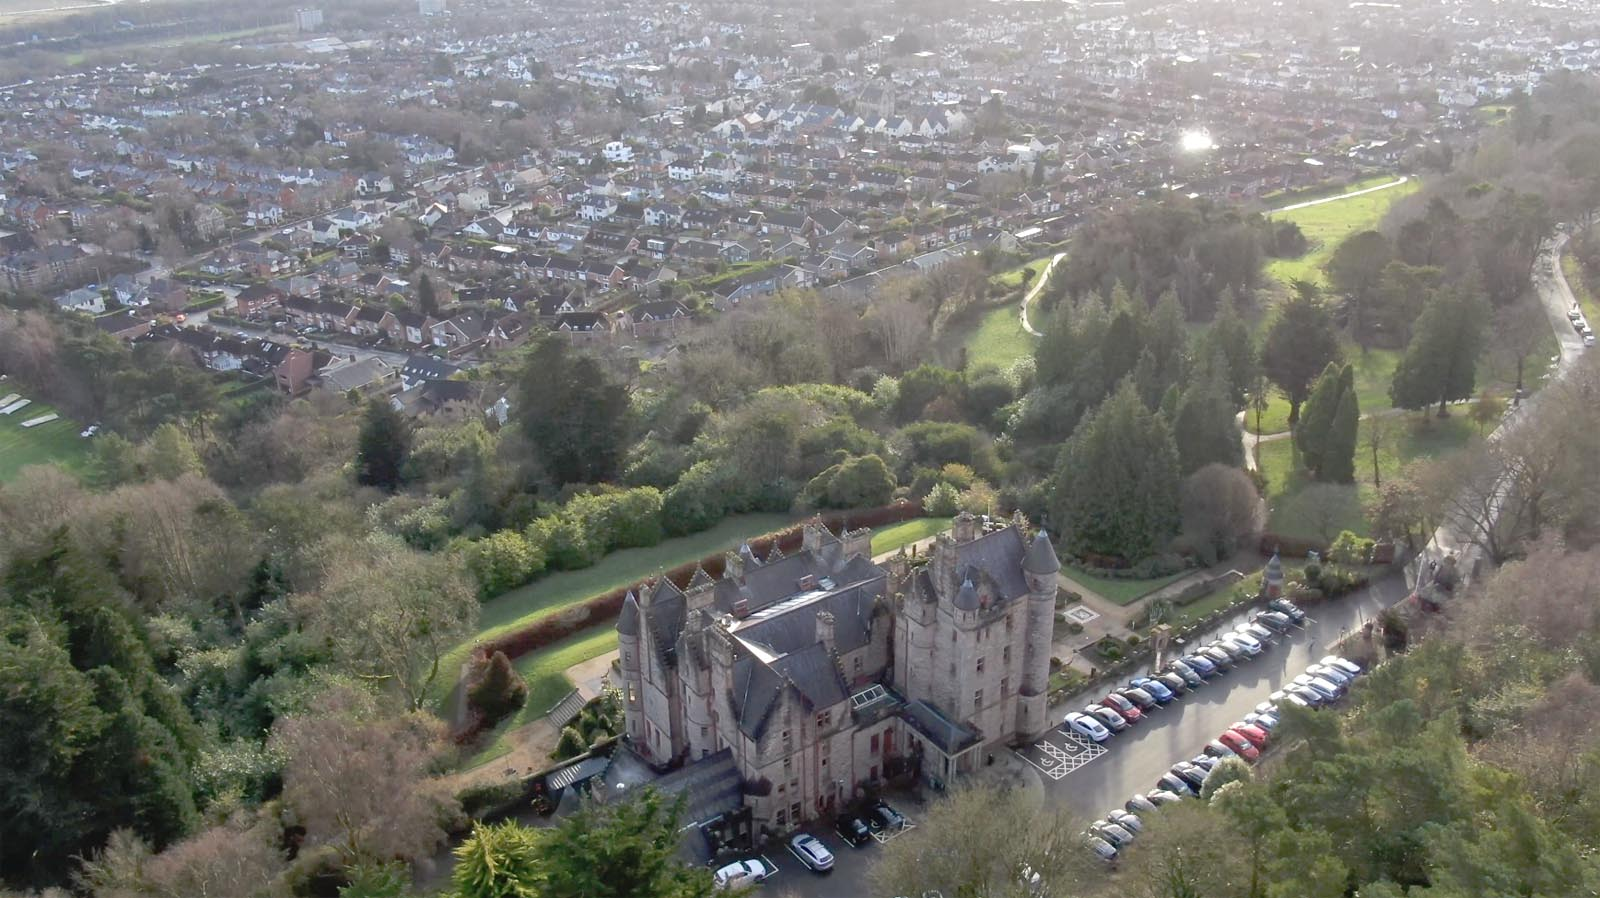 Aerial drone photography and video production services Dublin and Ireland portfolio - changing seasons in one video of Belfast Castle, Northern Ireland, video screenshot 3